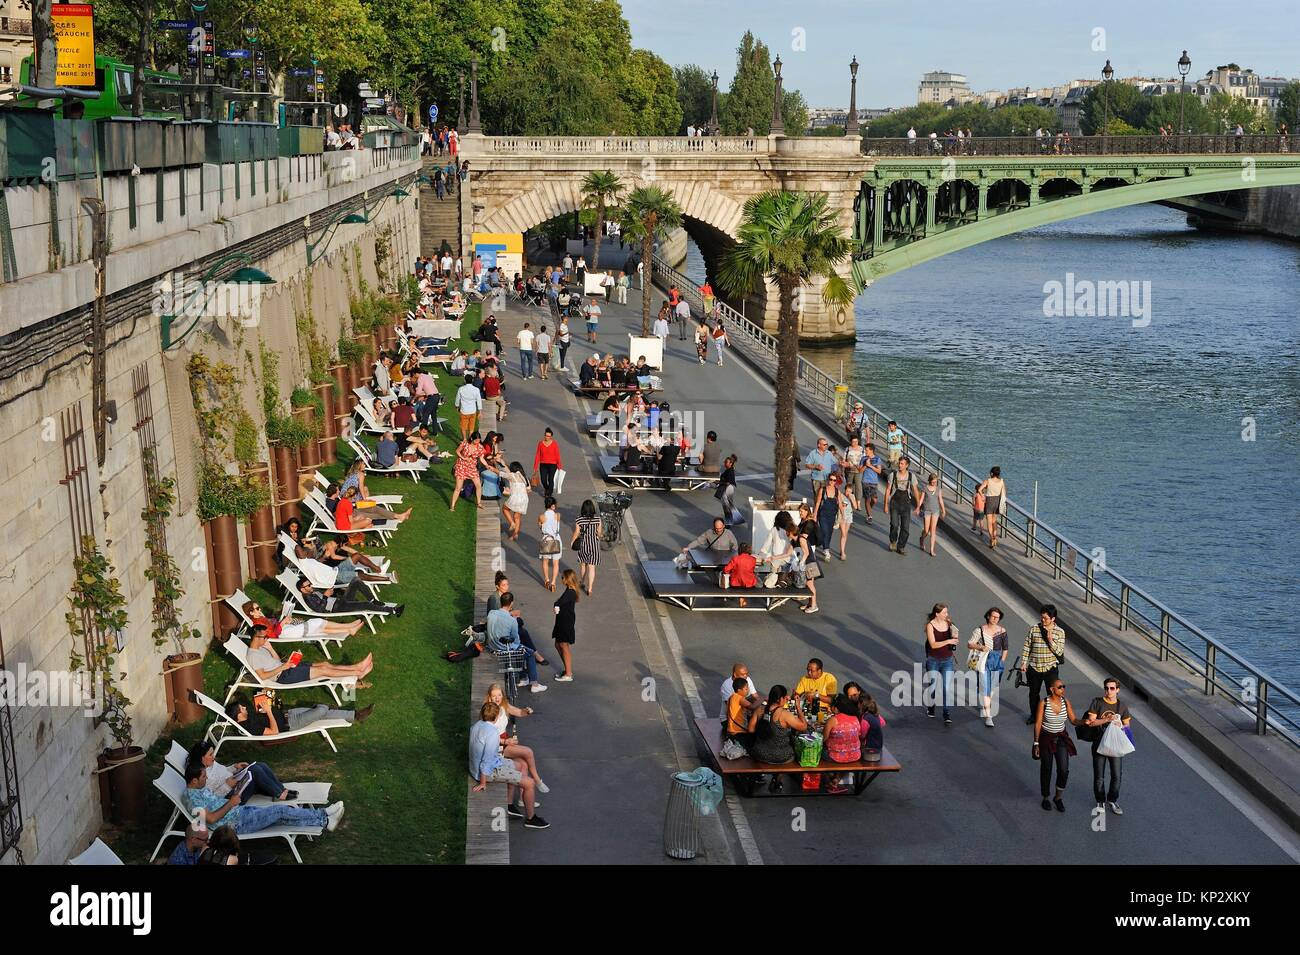 pedestrianized riverside G. Pompidou expressway, with the bridge Notre-Dame in the background, Paris, France, Europe. - Stock Image